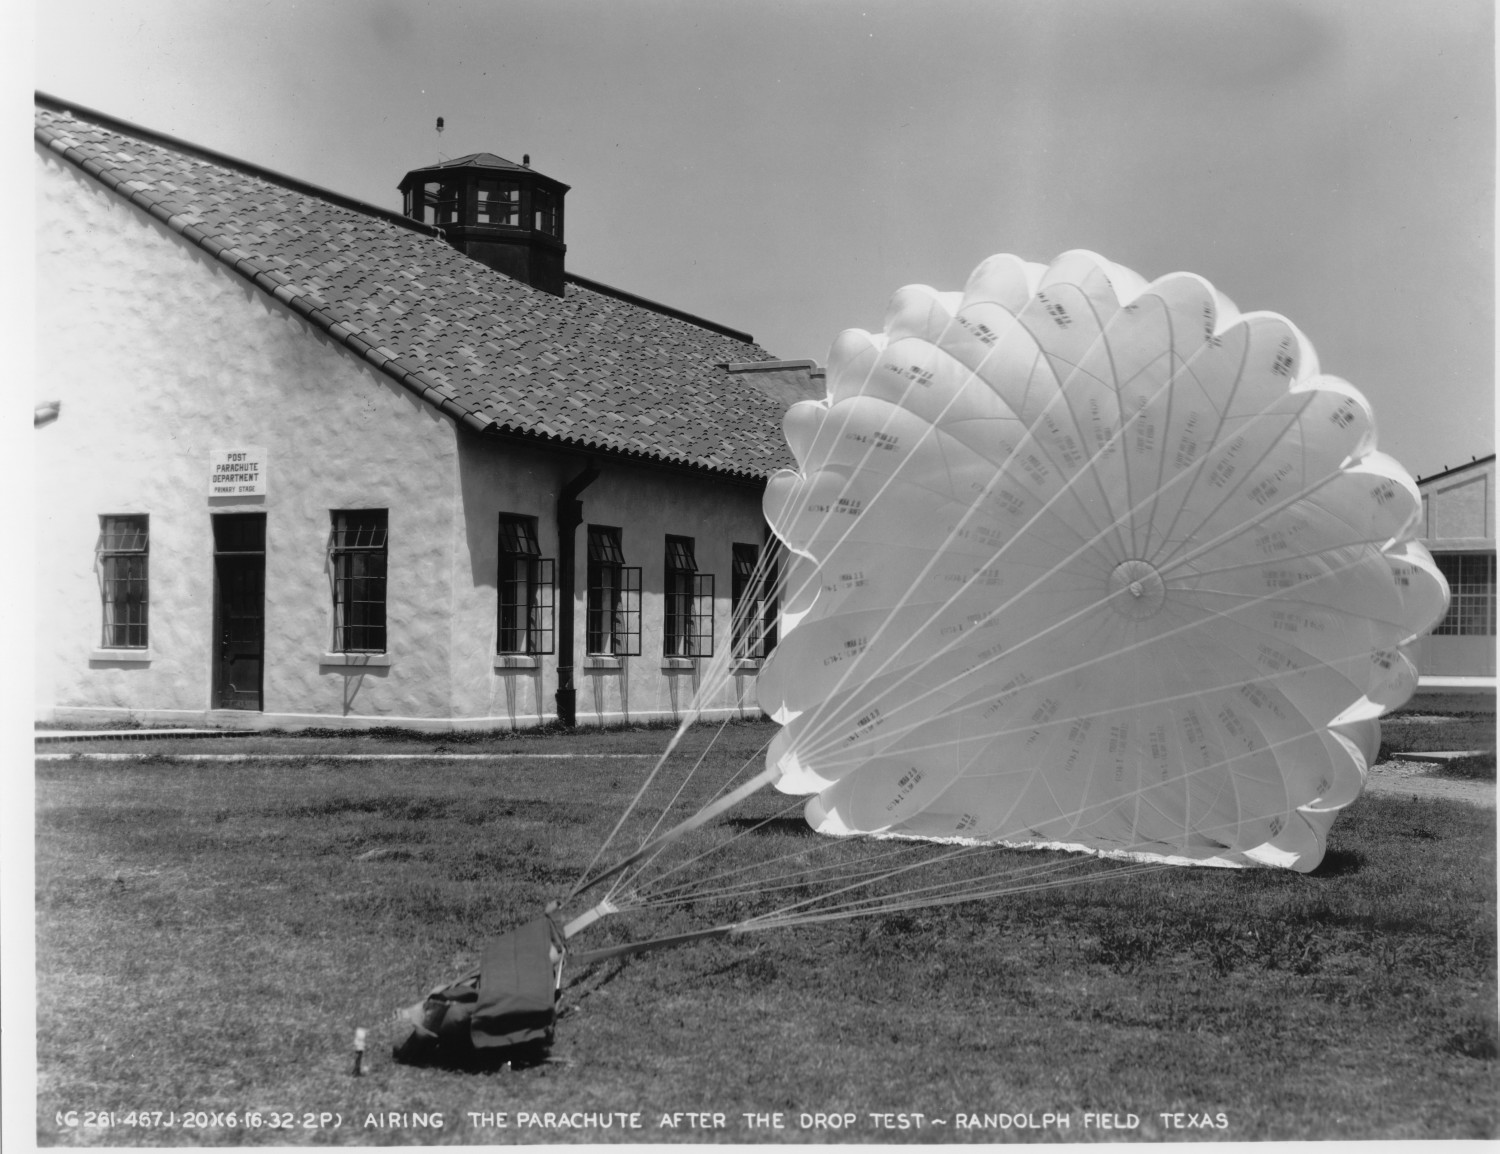 Airing the Parachute after the Drop Test                                                                                                      [Sequence #]: 1 of 1